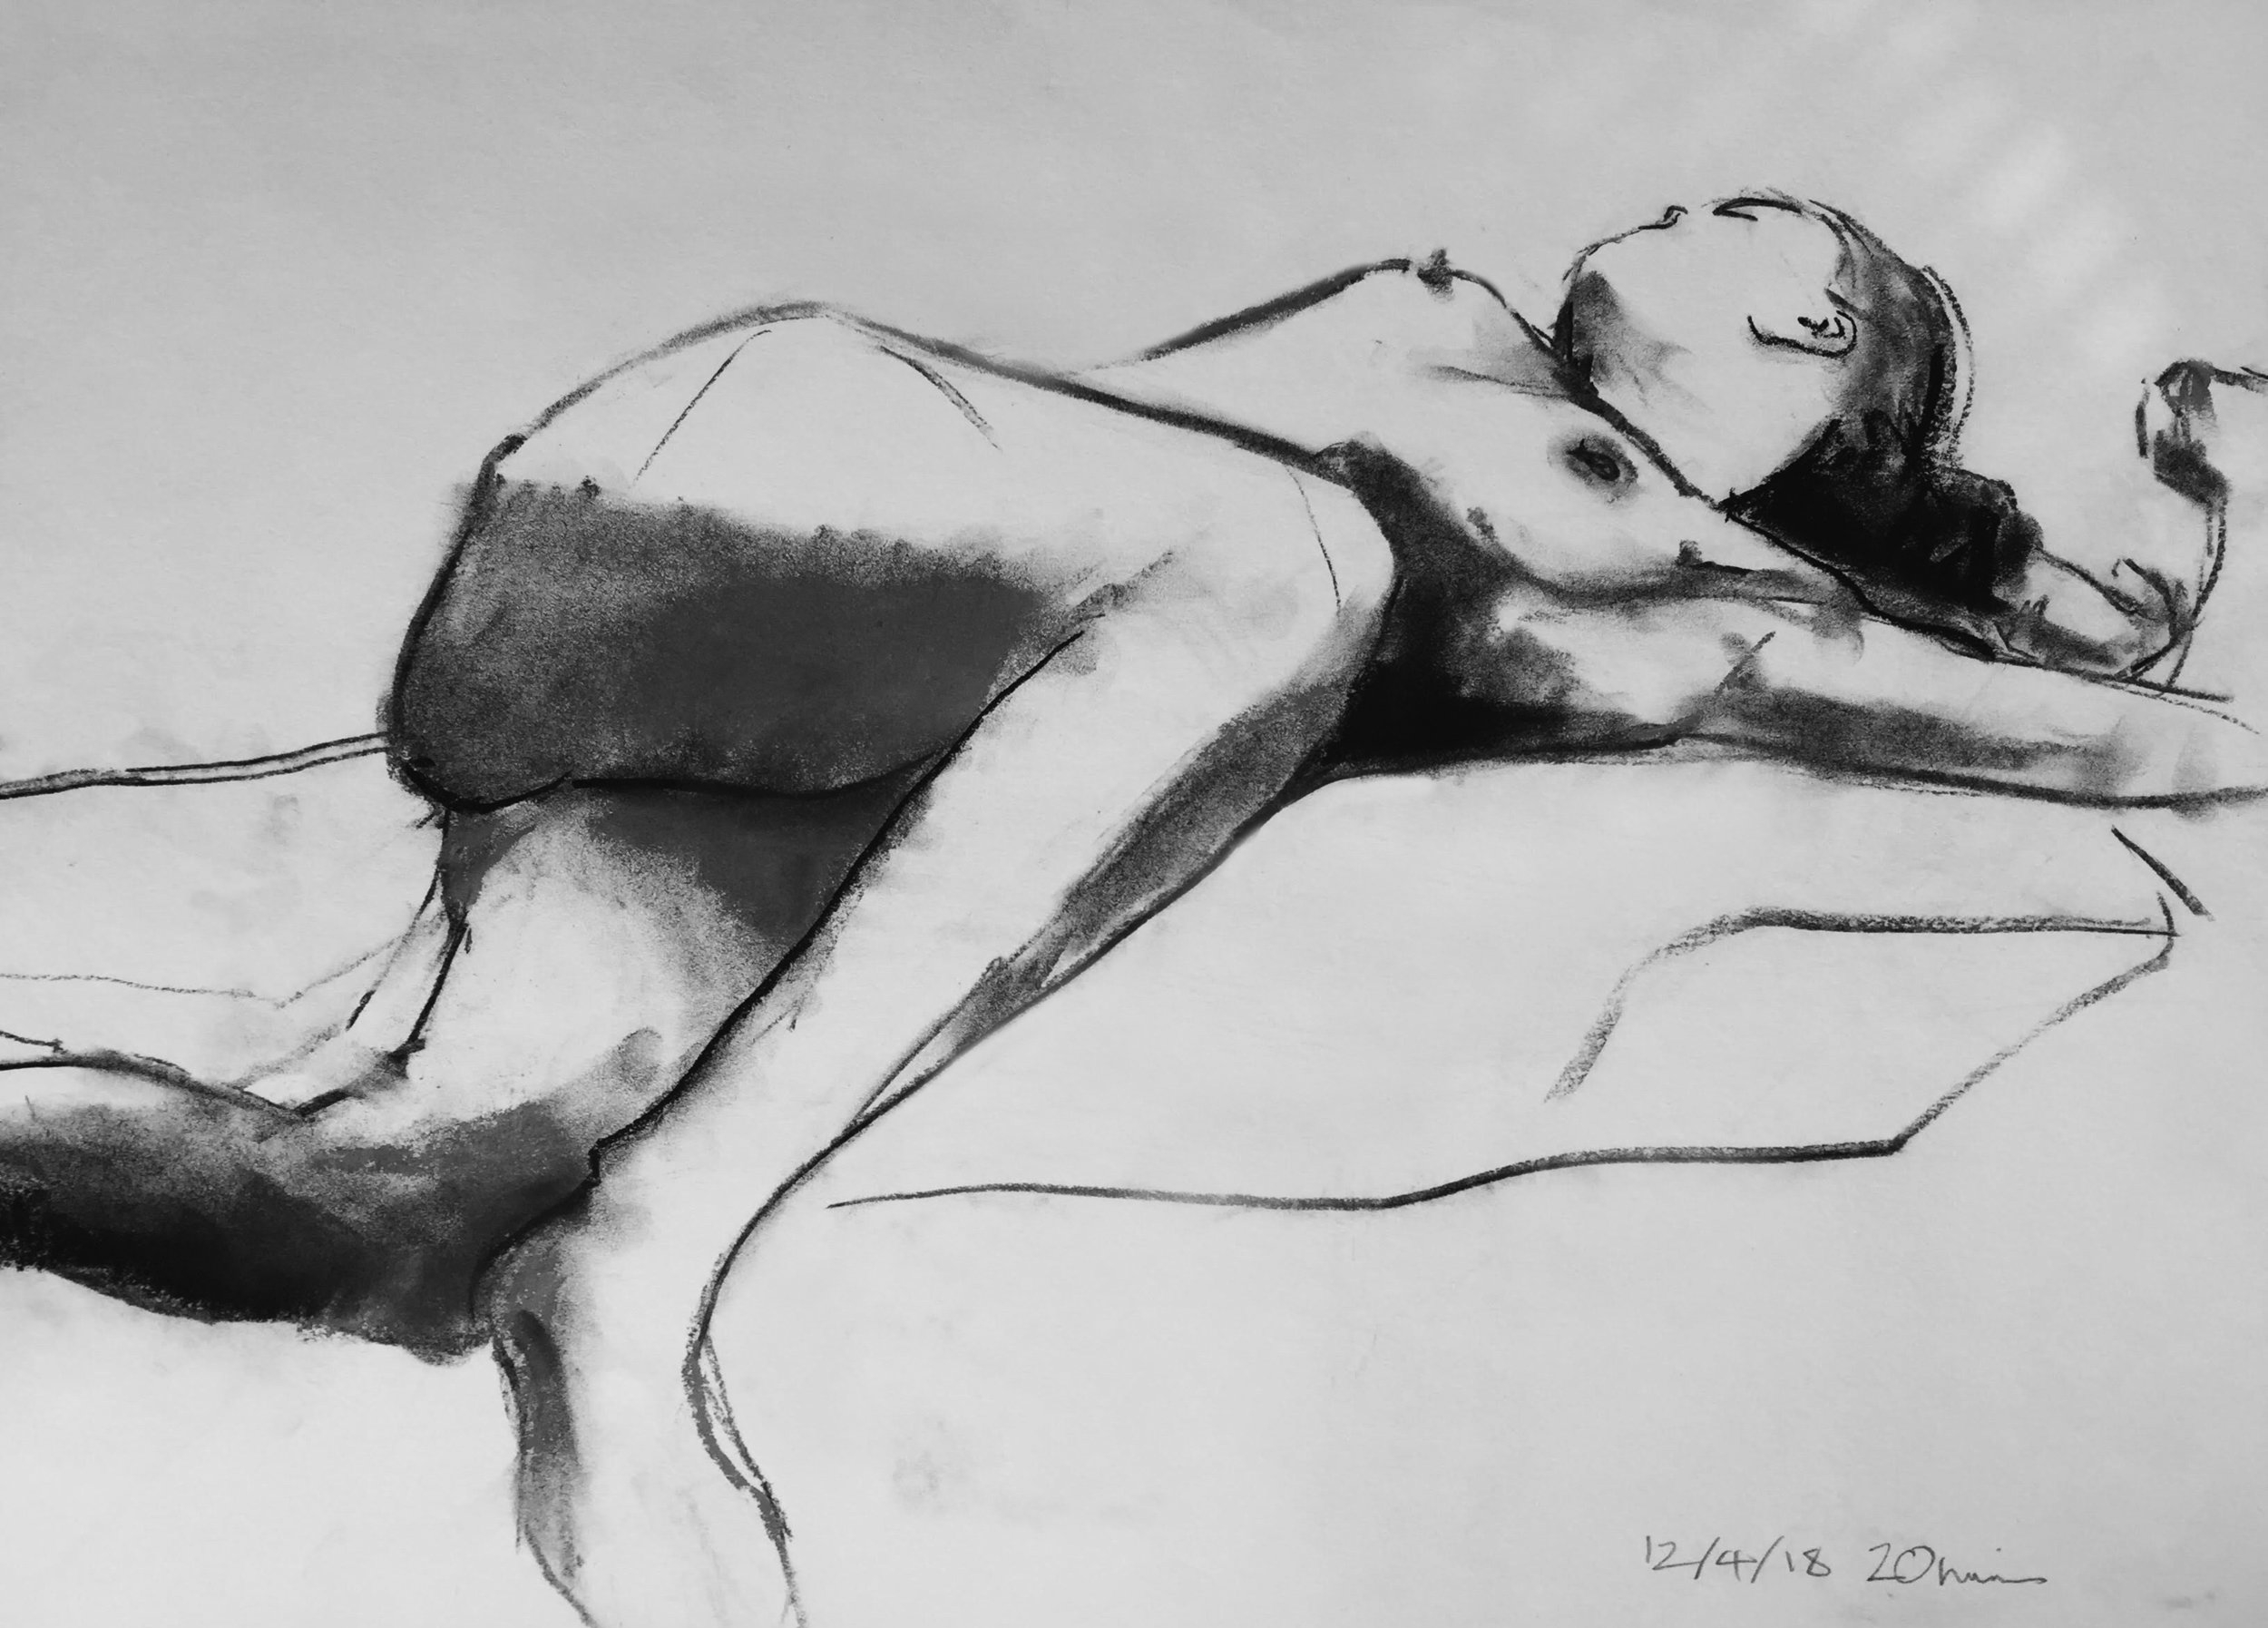 Life Drawing Sketch Session 12/4/18